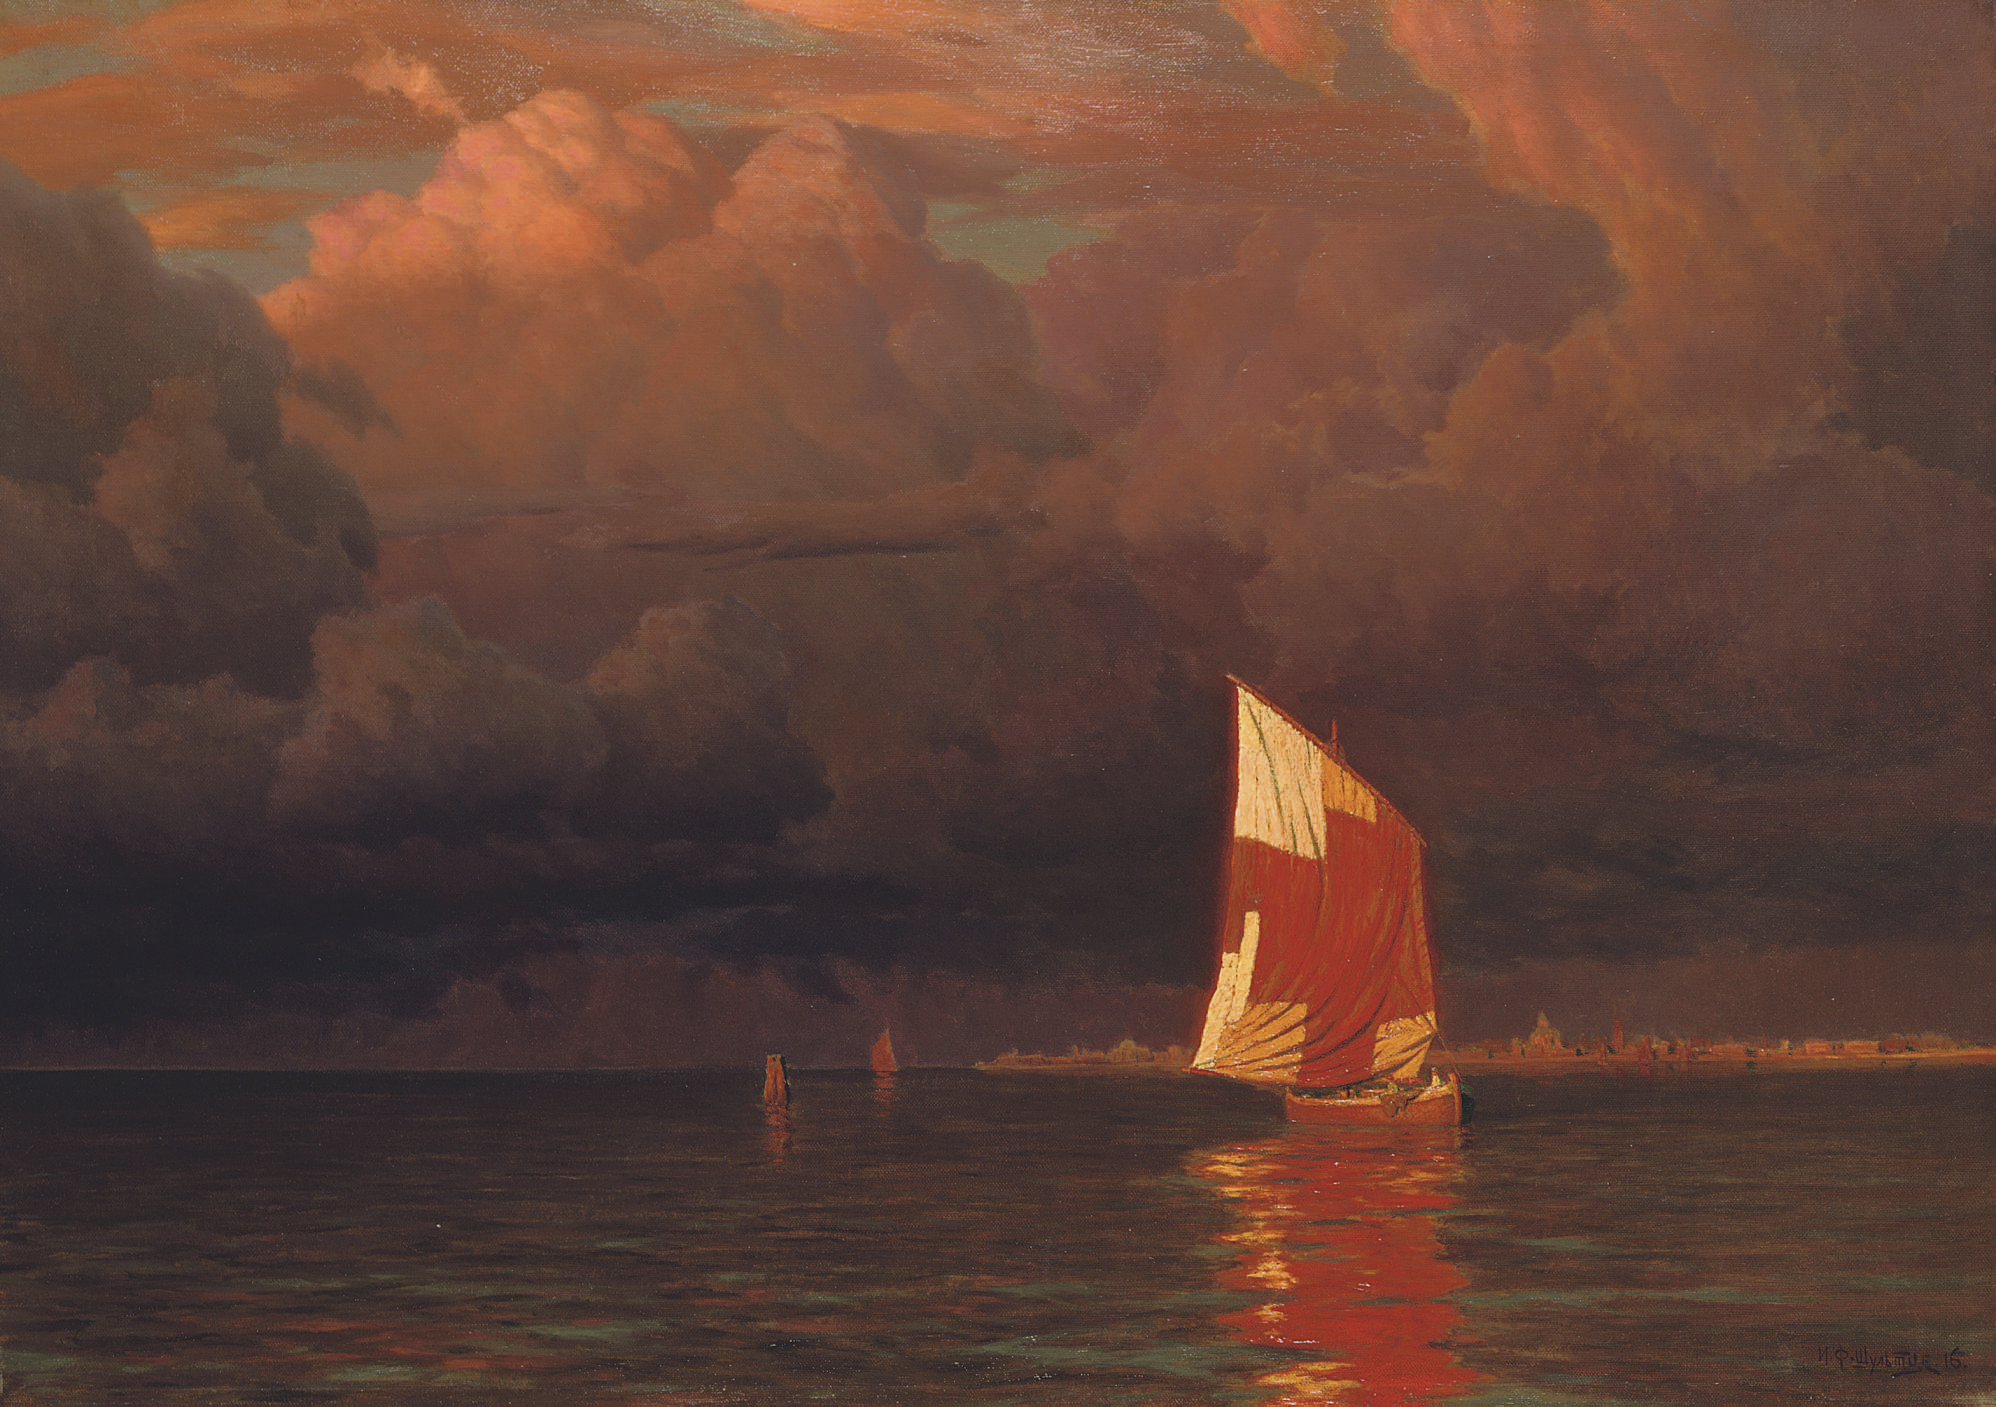 Sailing boat at sunset on the gulf of Finland